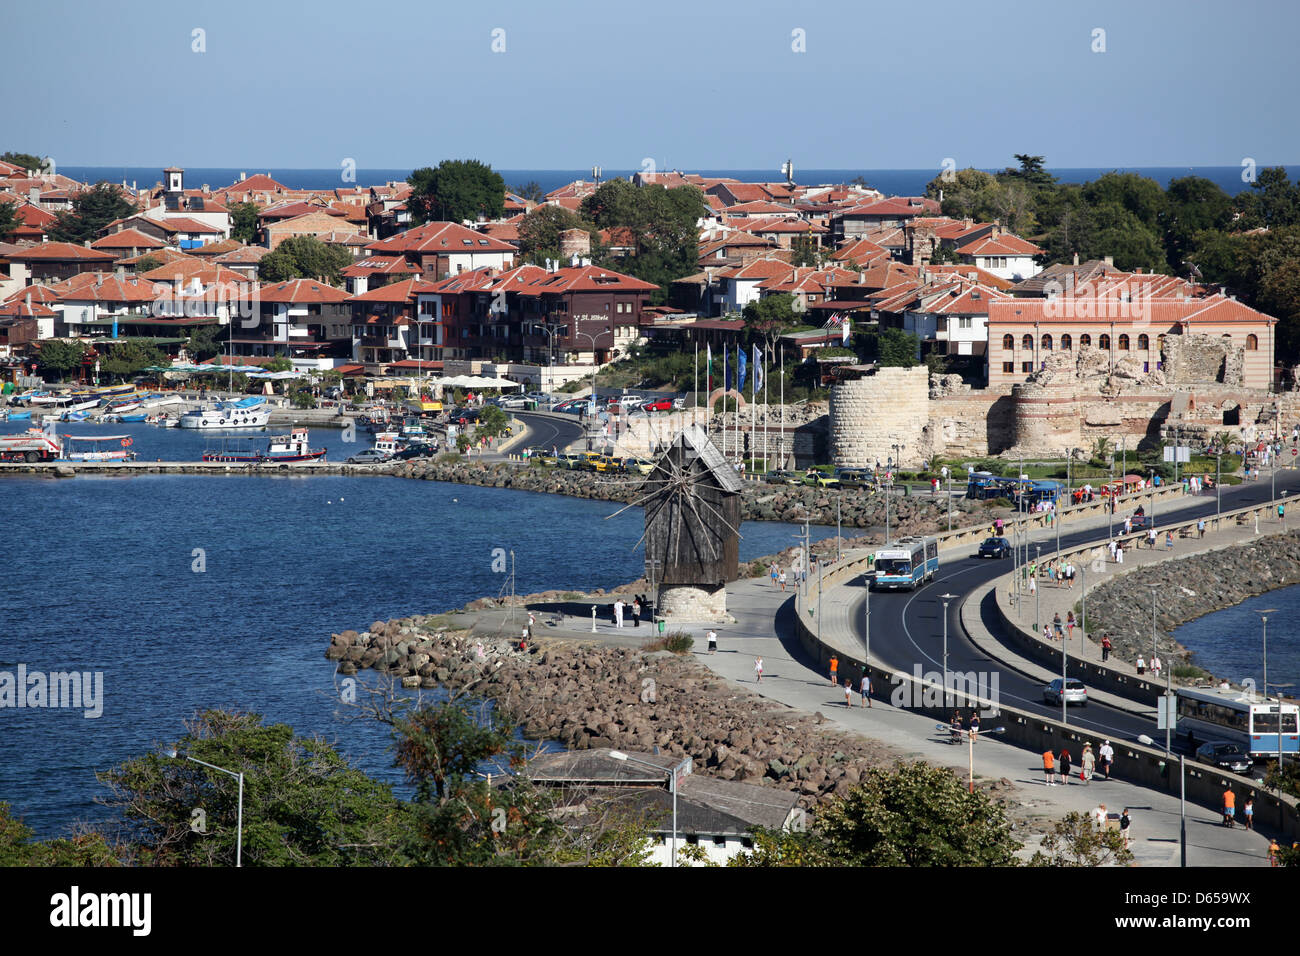 Old Nessebar city, Bulgaria - Stock Image